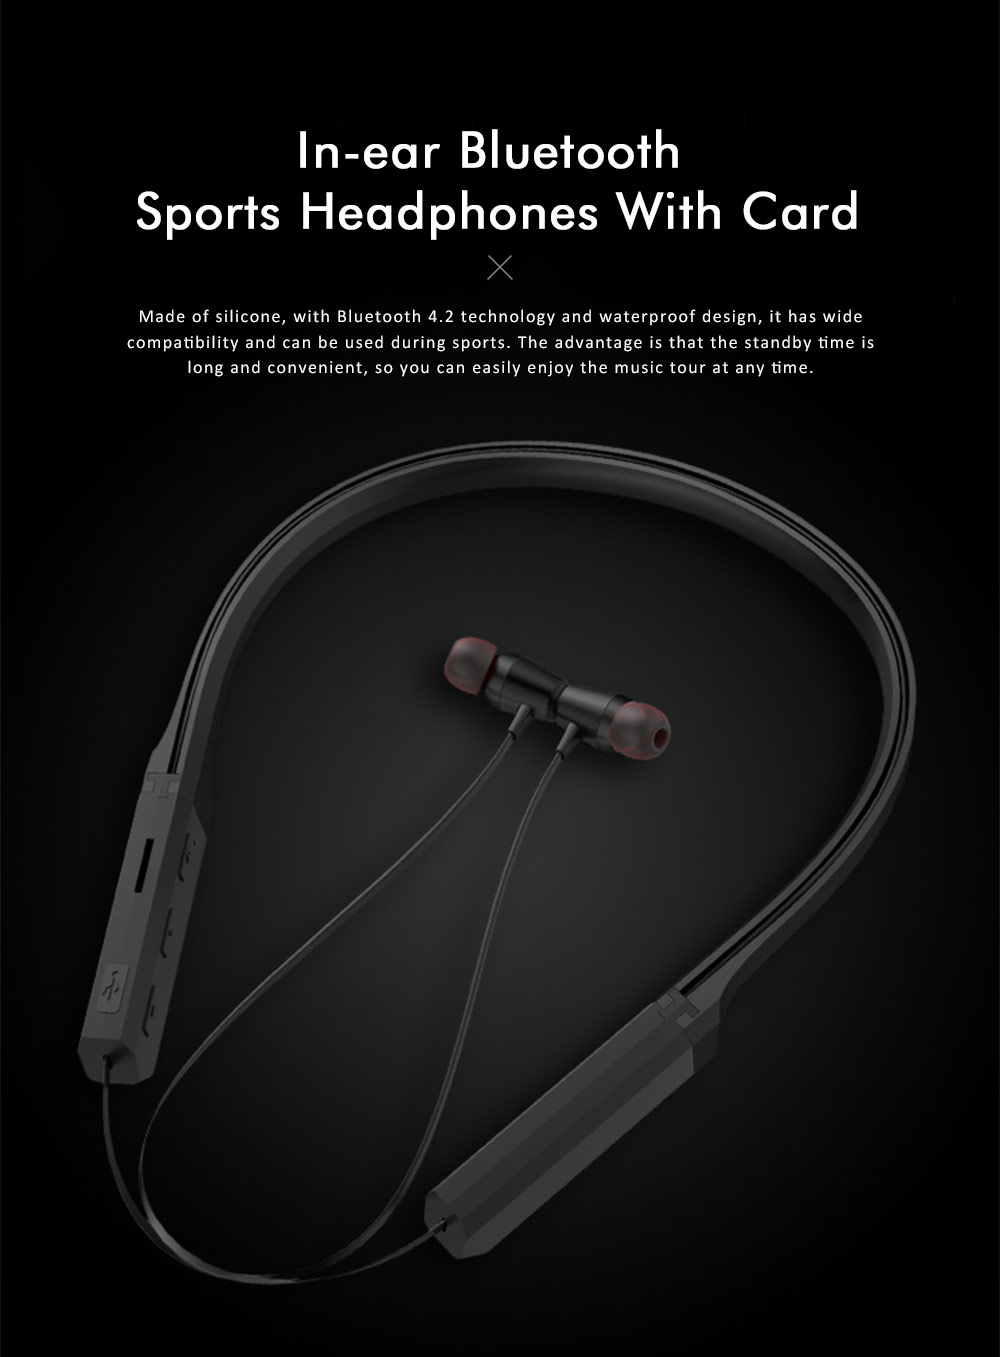 Sports Headphones with TF Card Slot, Hanging Neck Bluetooth Earphones, Wireless In-ear Headset 0